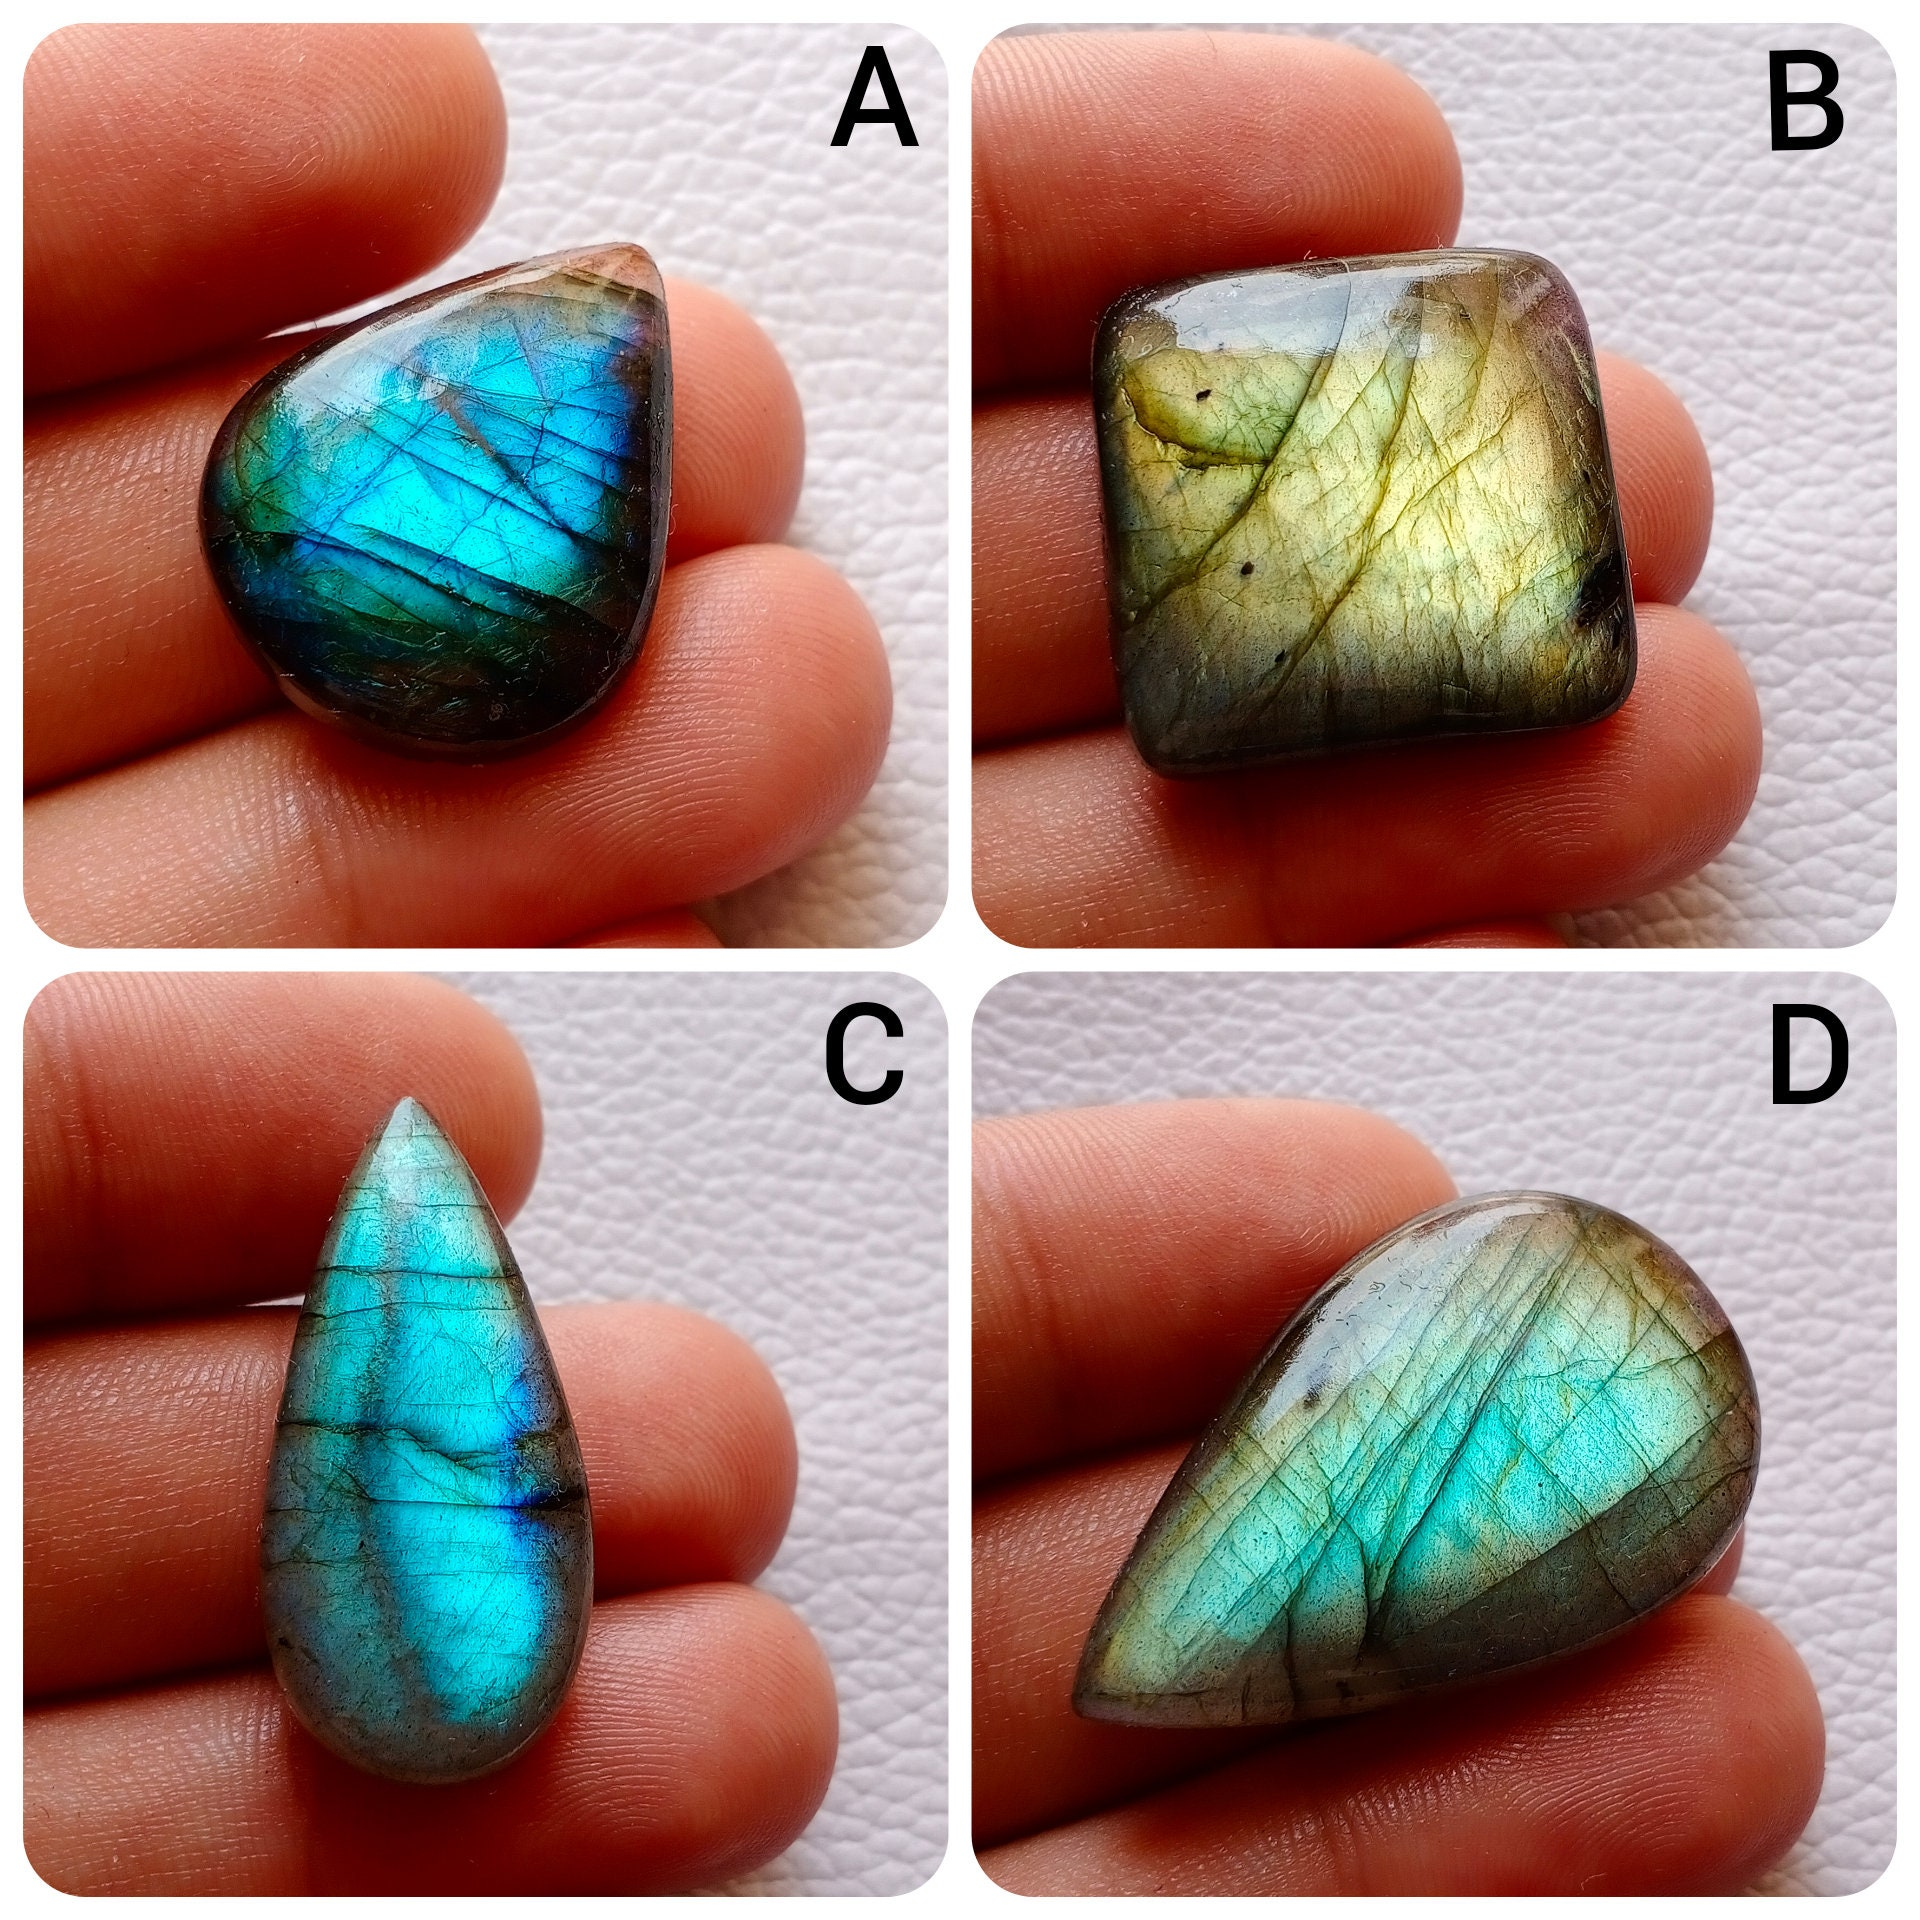 Labradorite Pendant Beads for Wirewrapping Jewelry Cabochons Labradorite Stone AAA Natural Labradorite Crystal Flashy Labradorite Beads